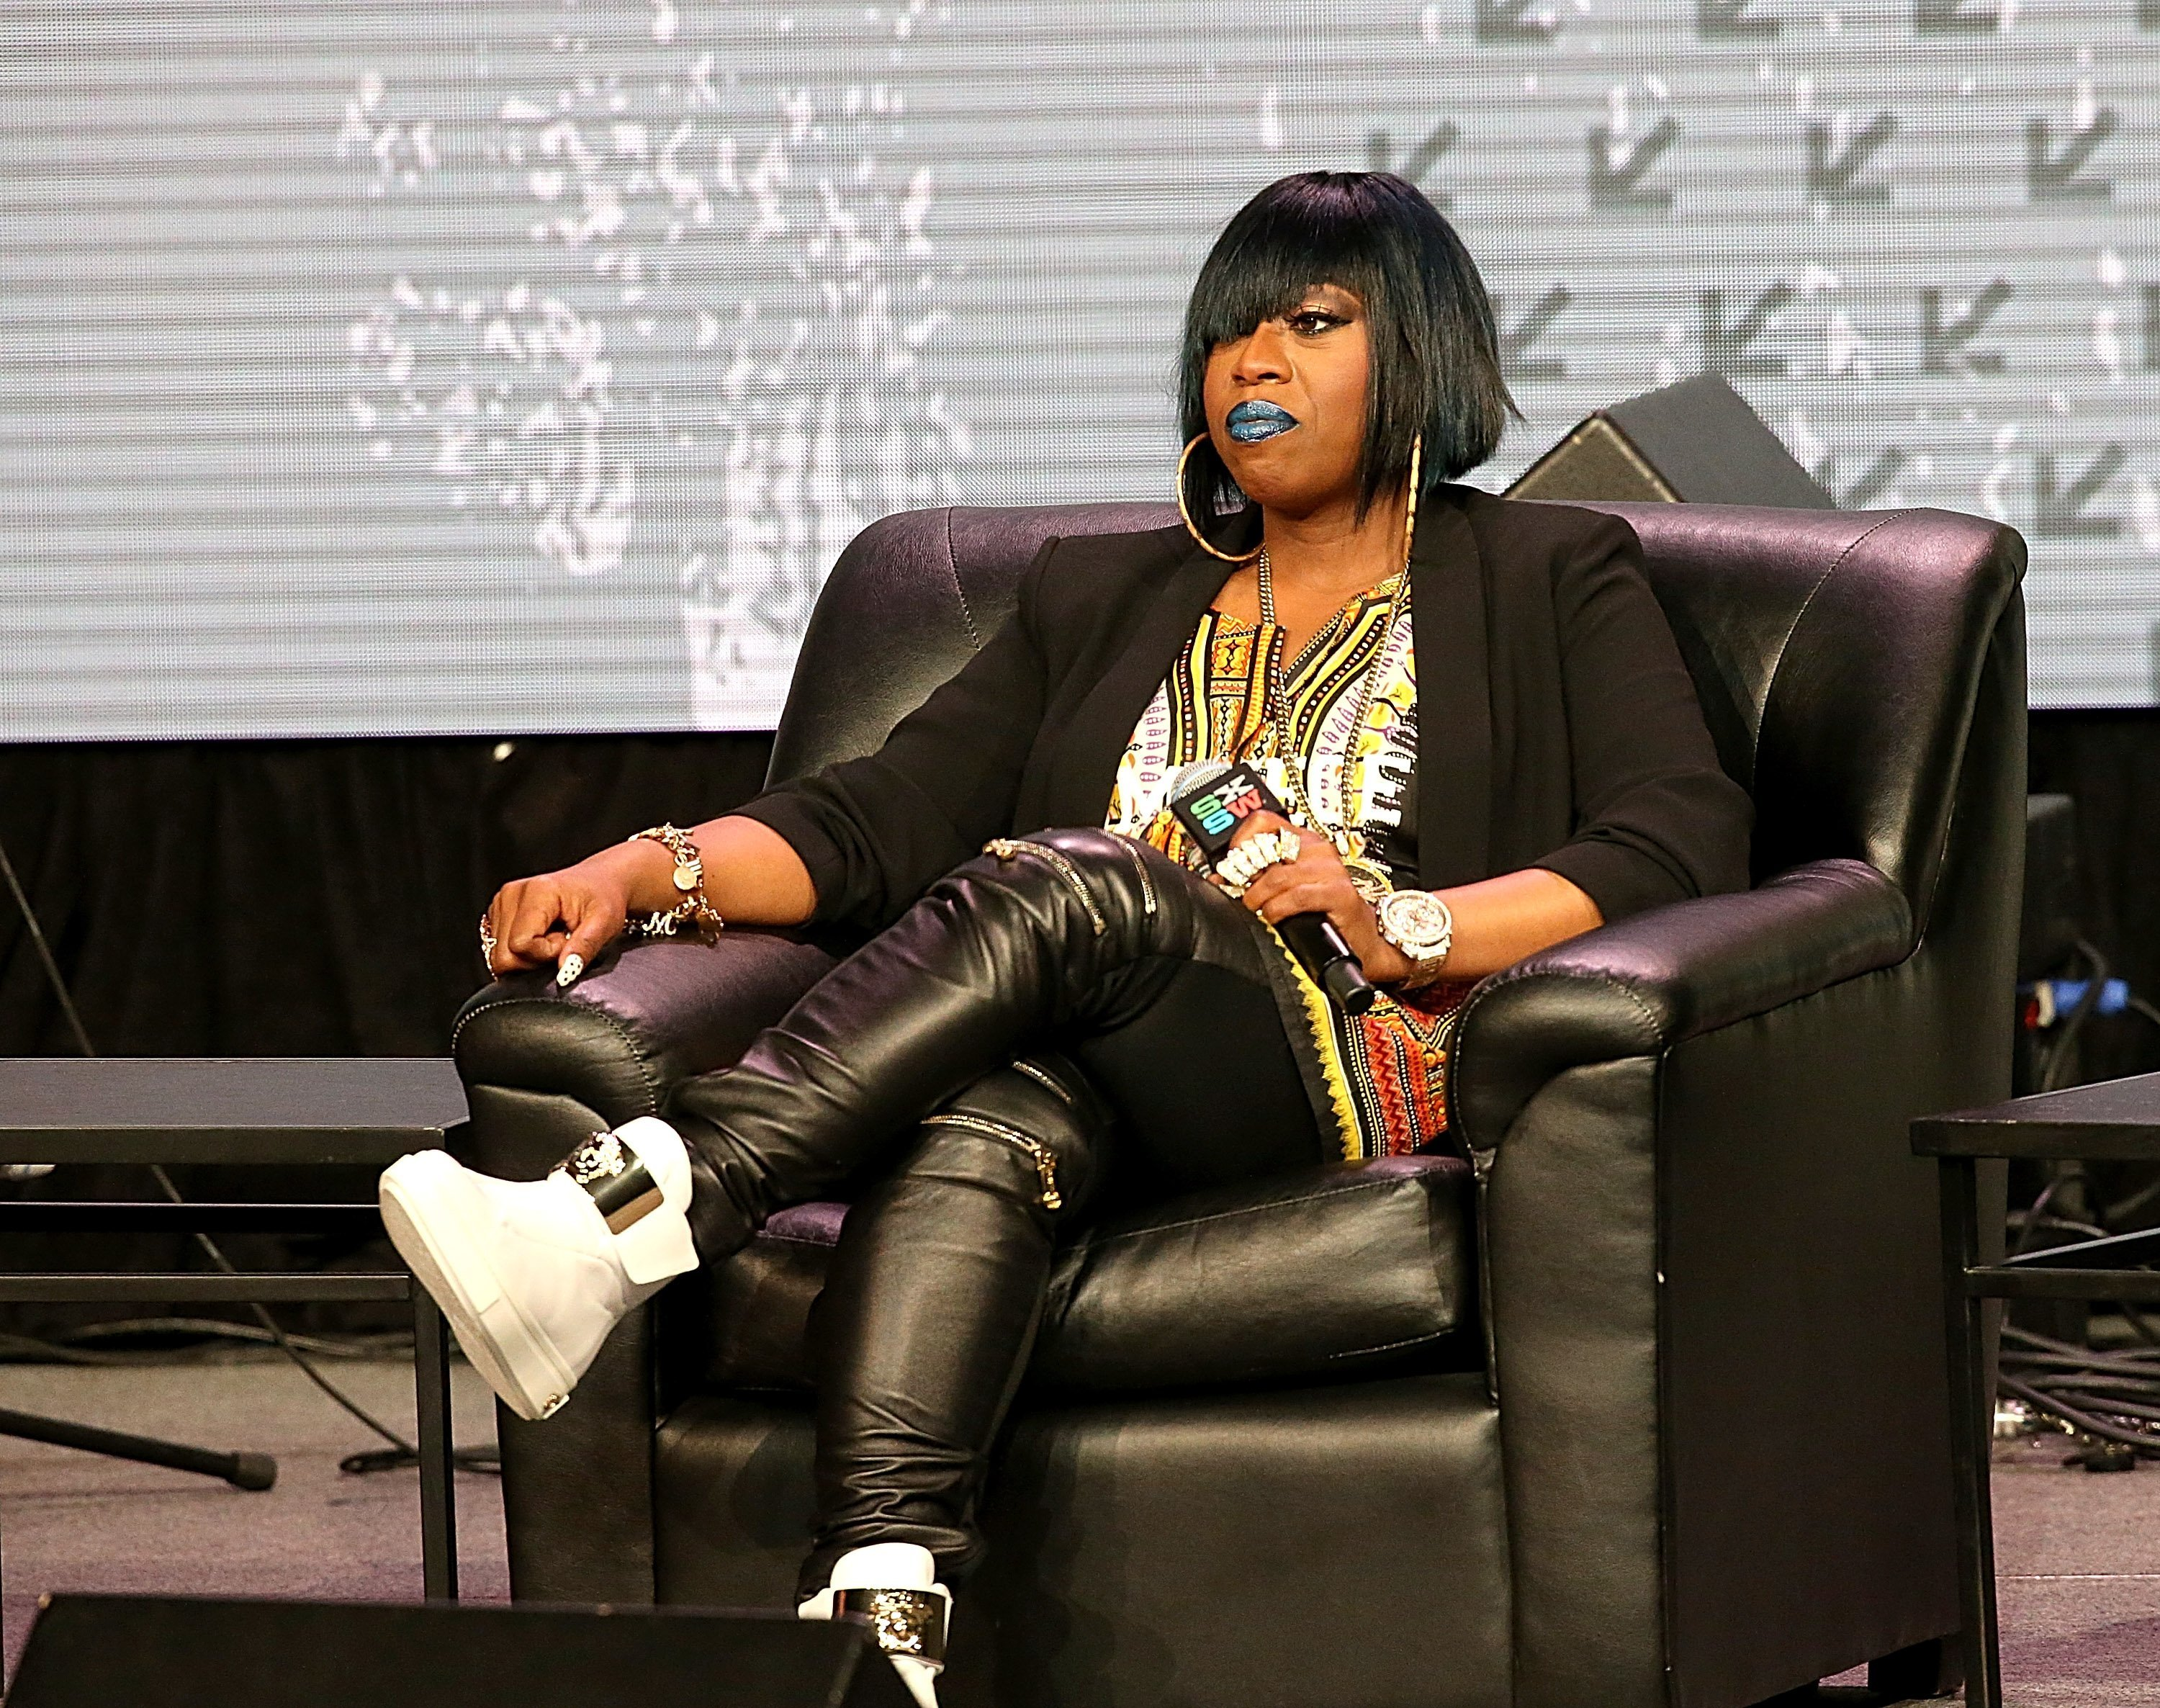 Missy Elliot attends the keynote address at the Austin Convention Center during the South by Southwest Music Festival on Mar. 16, 2016 in Austin, Texas | Photo: Getty Images